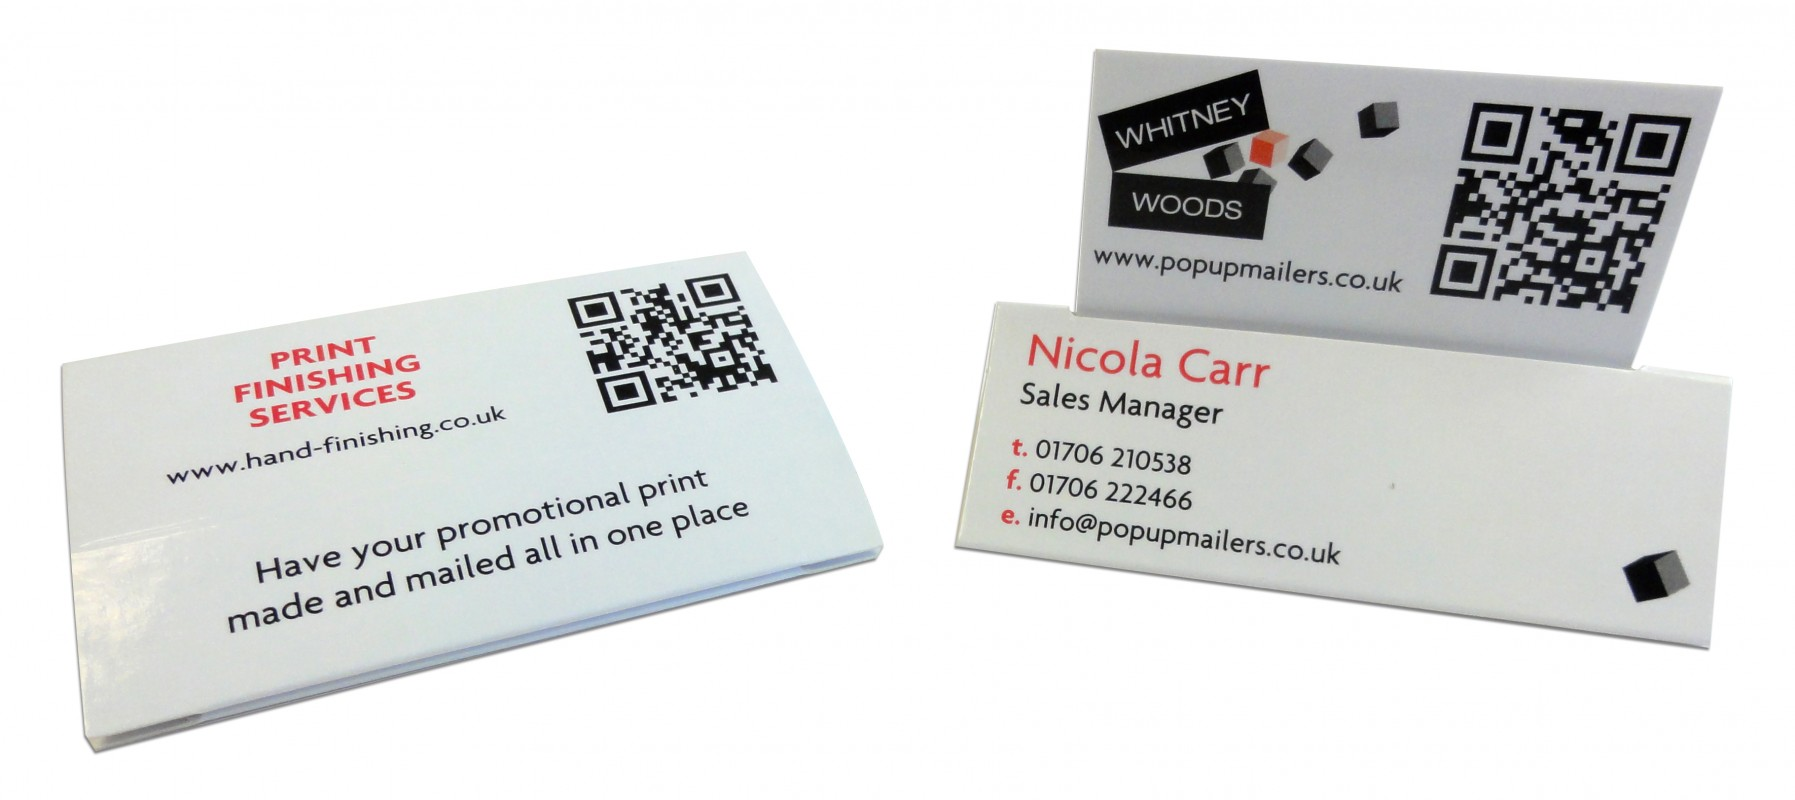 Business card tent topper whitney woods for Tent business cards